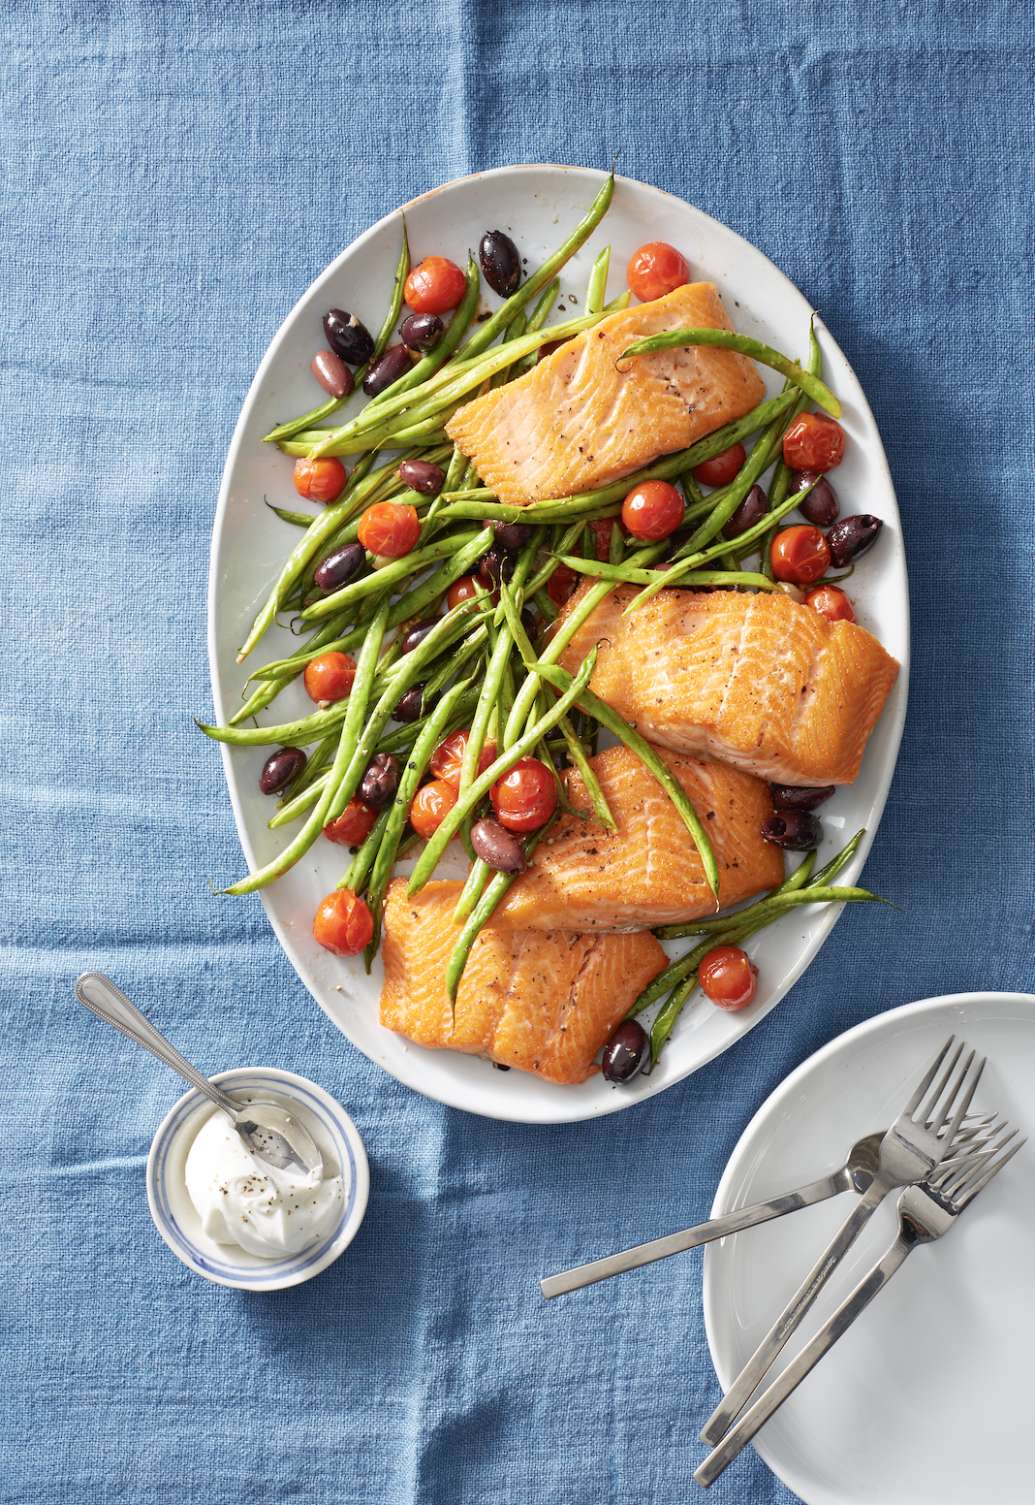 11 Easy Low-Calorie Meals - Low Cal Recipes That'll Fill You Up